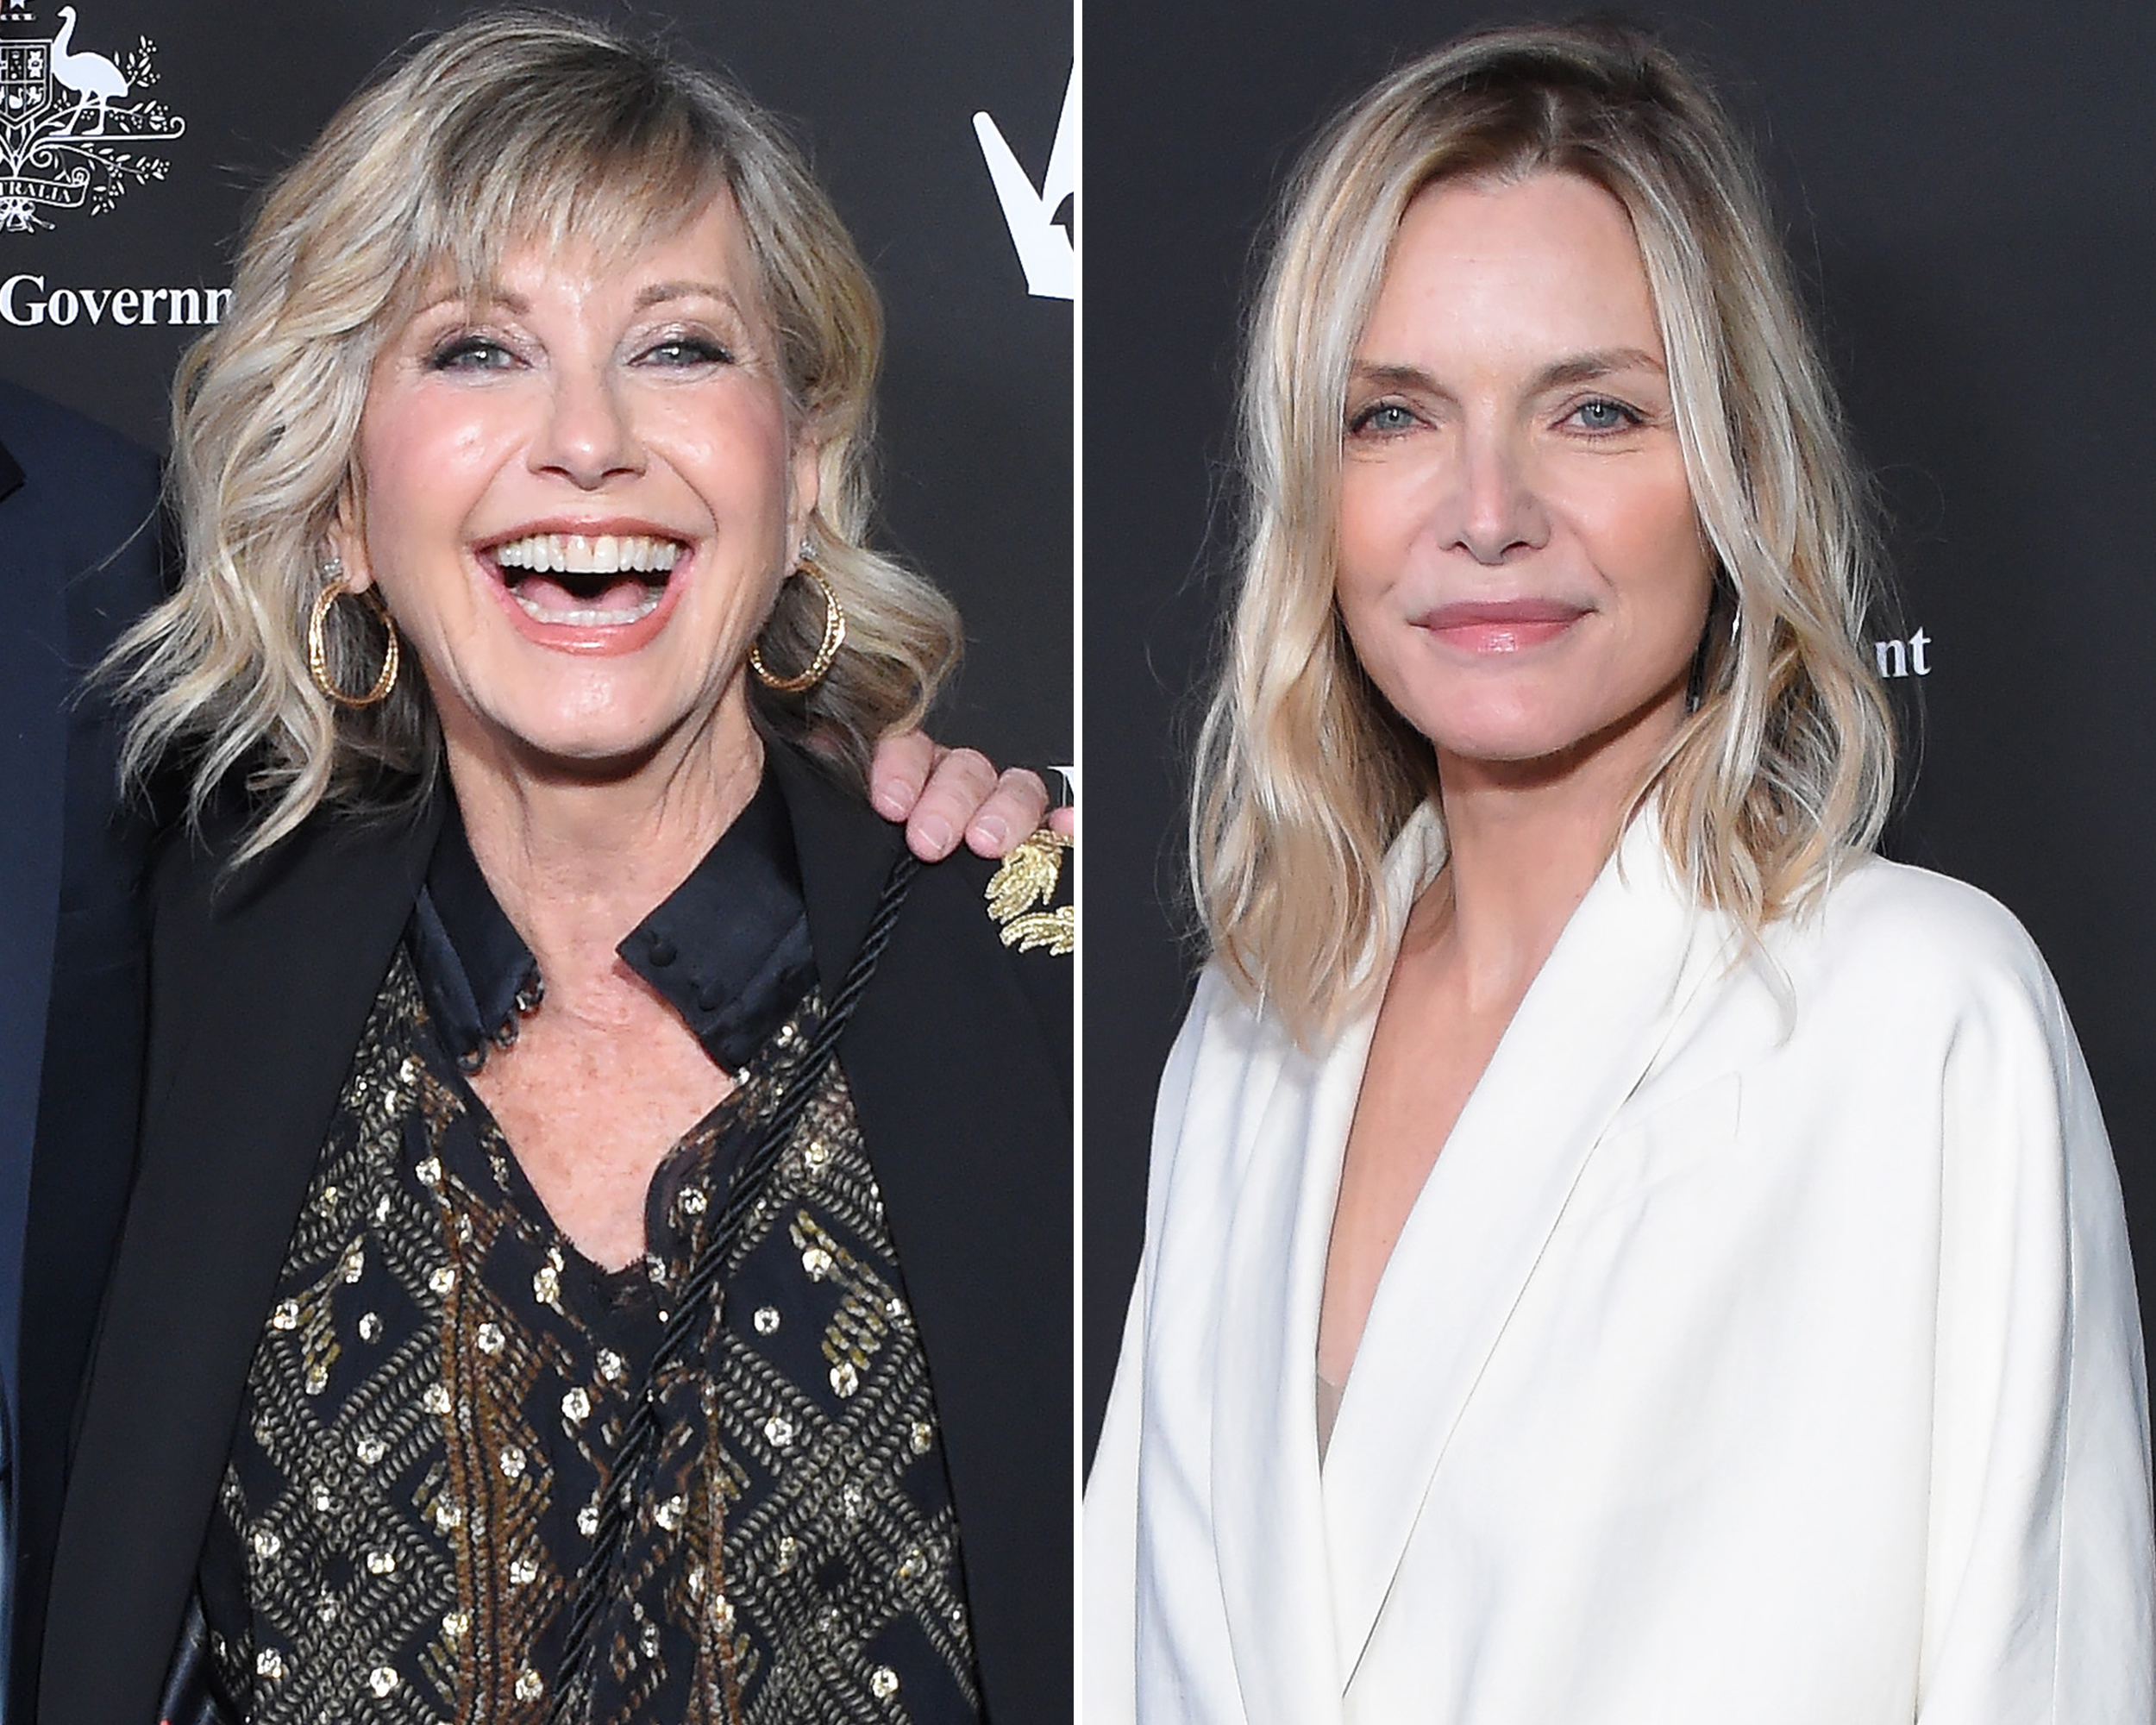 'Grease' Star Olivia Newton-John Takes Sweet Selfie With 'Grease' 2 Star Michelle Pfeiffer